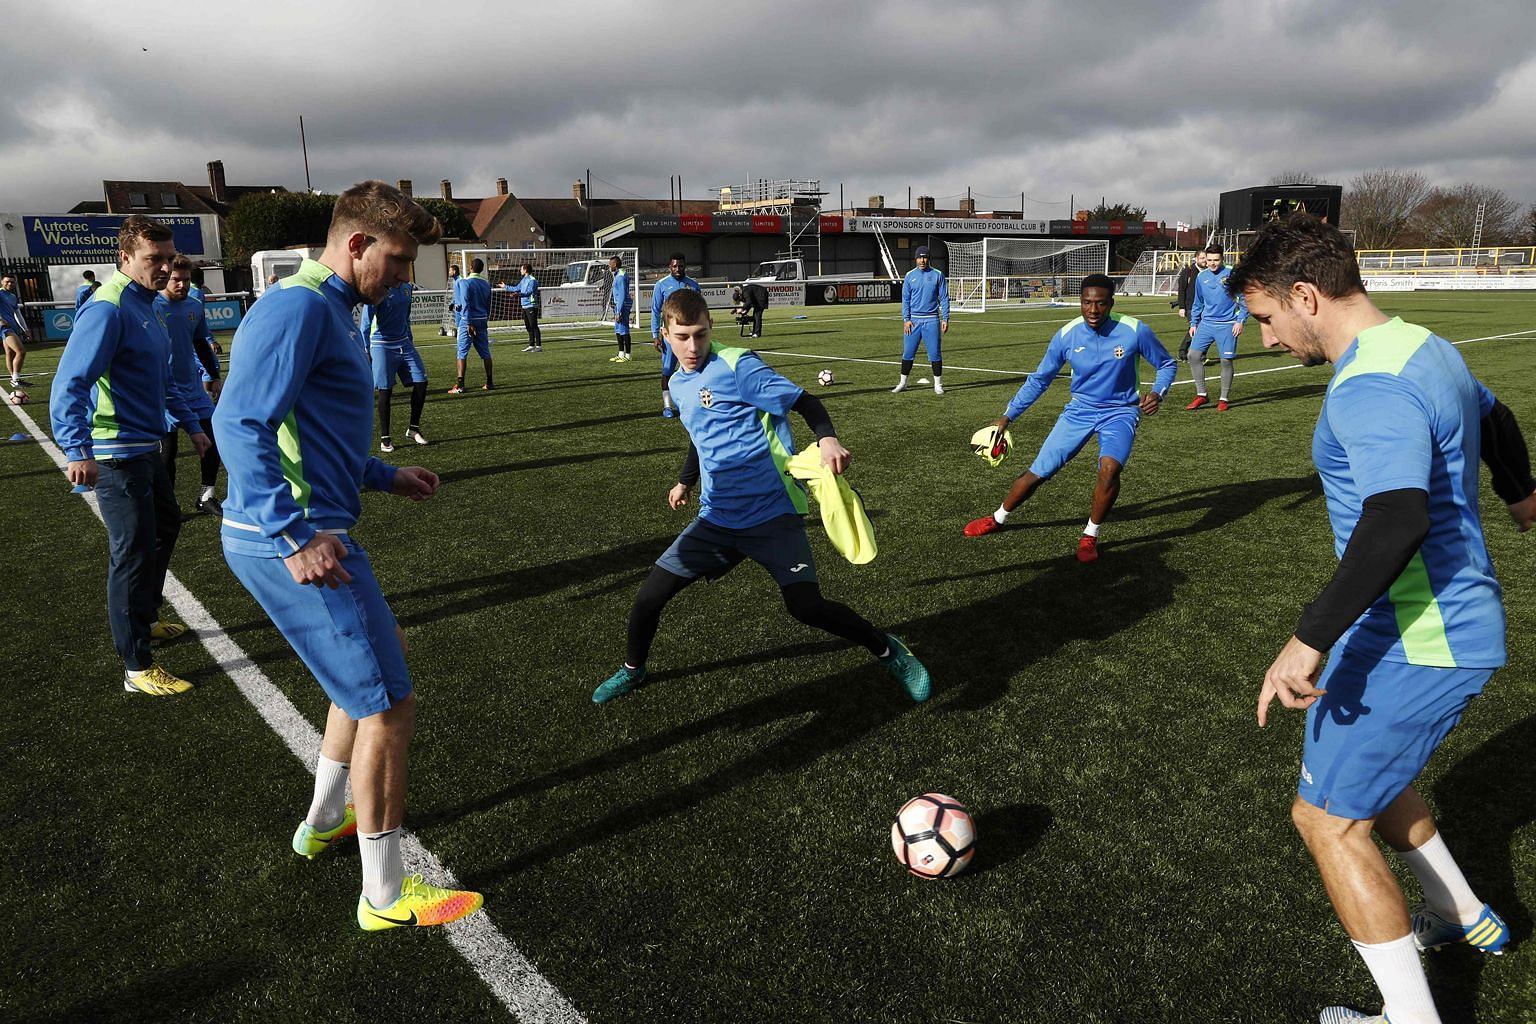 Sutton players in a drill during a training session ahead of tonight's FA Cup fifth-round clash against mighty Arsenal. The Gunners are at their most vulnerable level in years but Arsene Wenger has promised to pick a strong team as Sutton sense argua